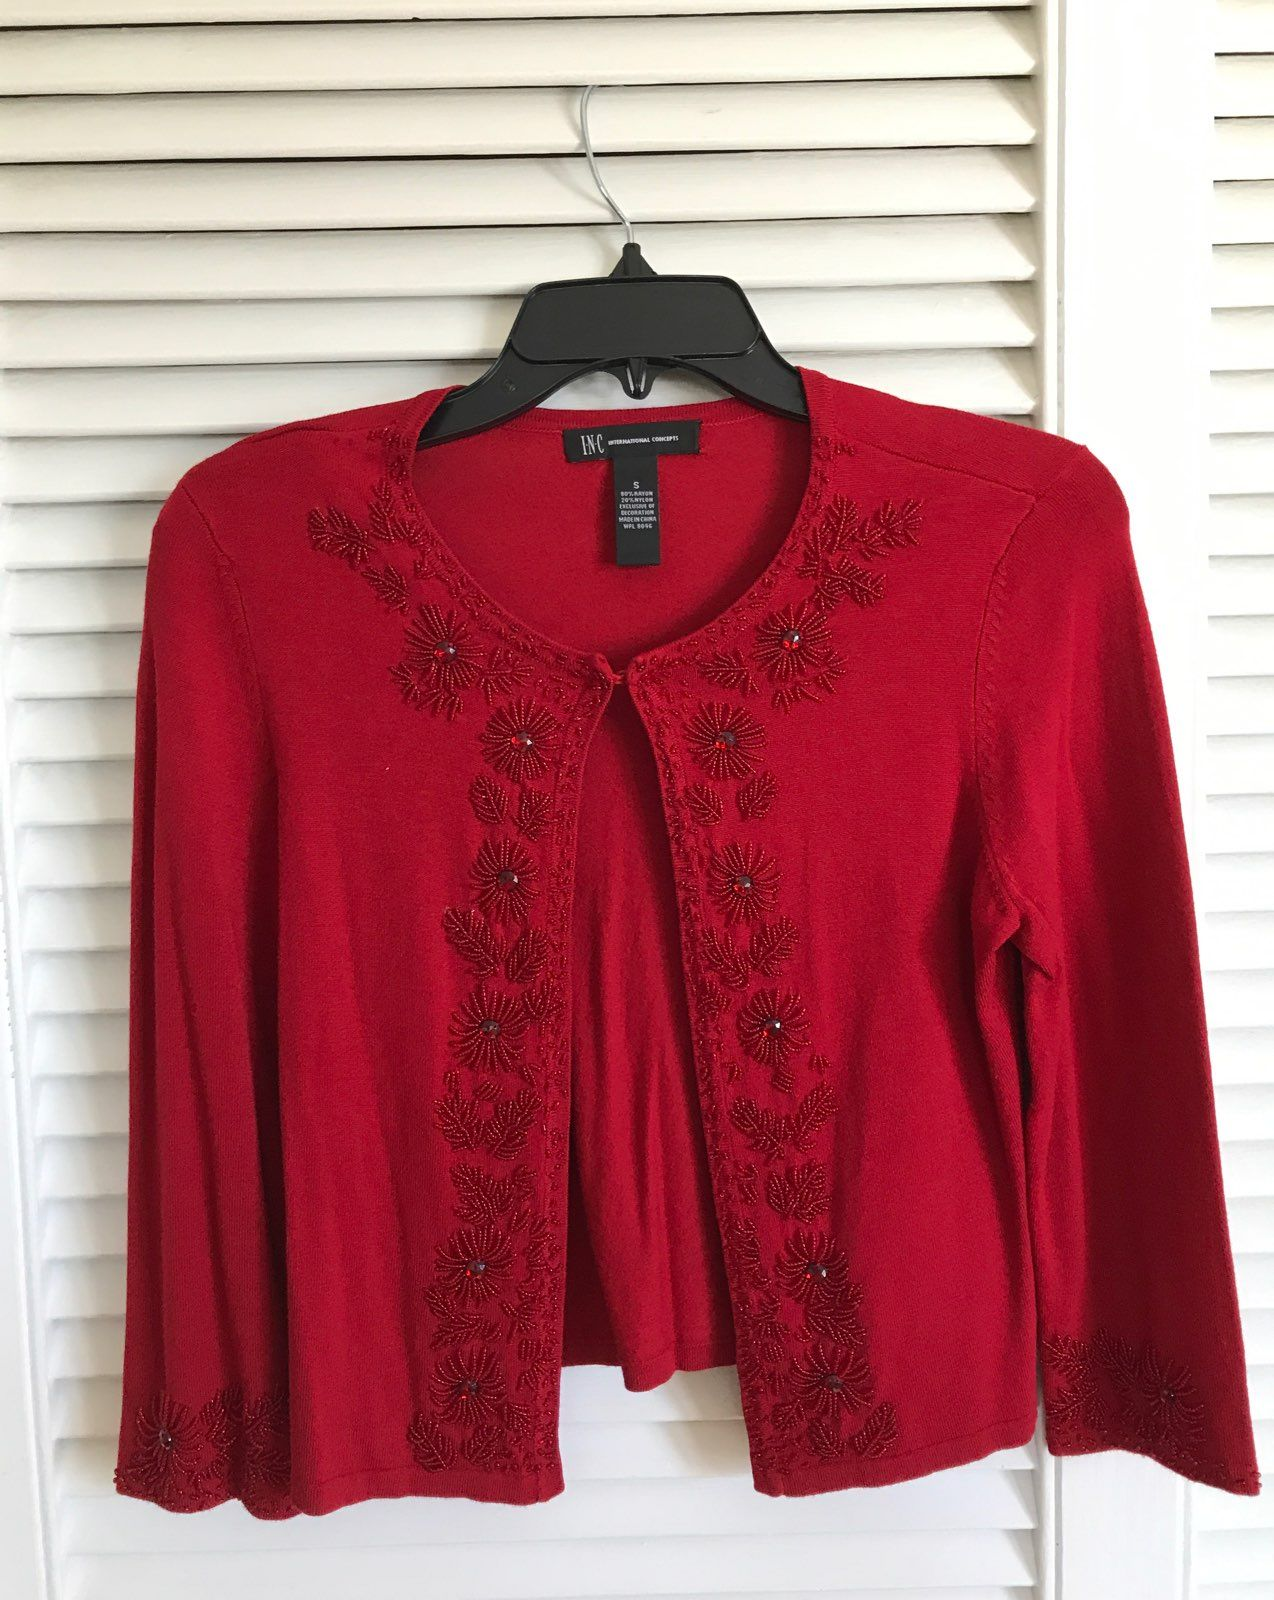 Red Sequin Sweater Size Small - Mercari: BUY & SELL THINGS YOU LOVE